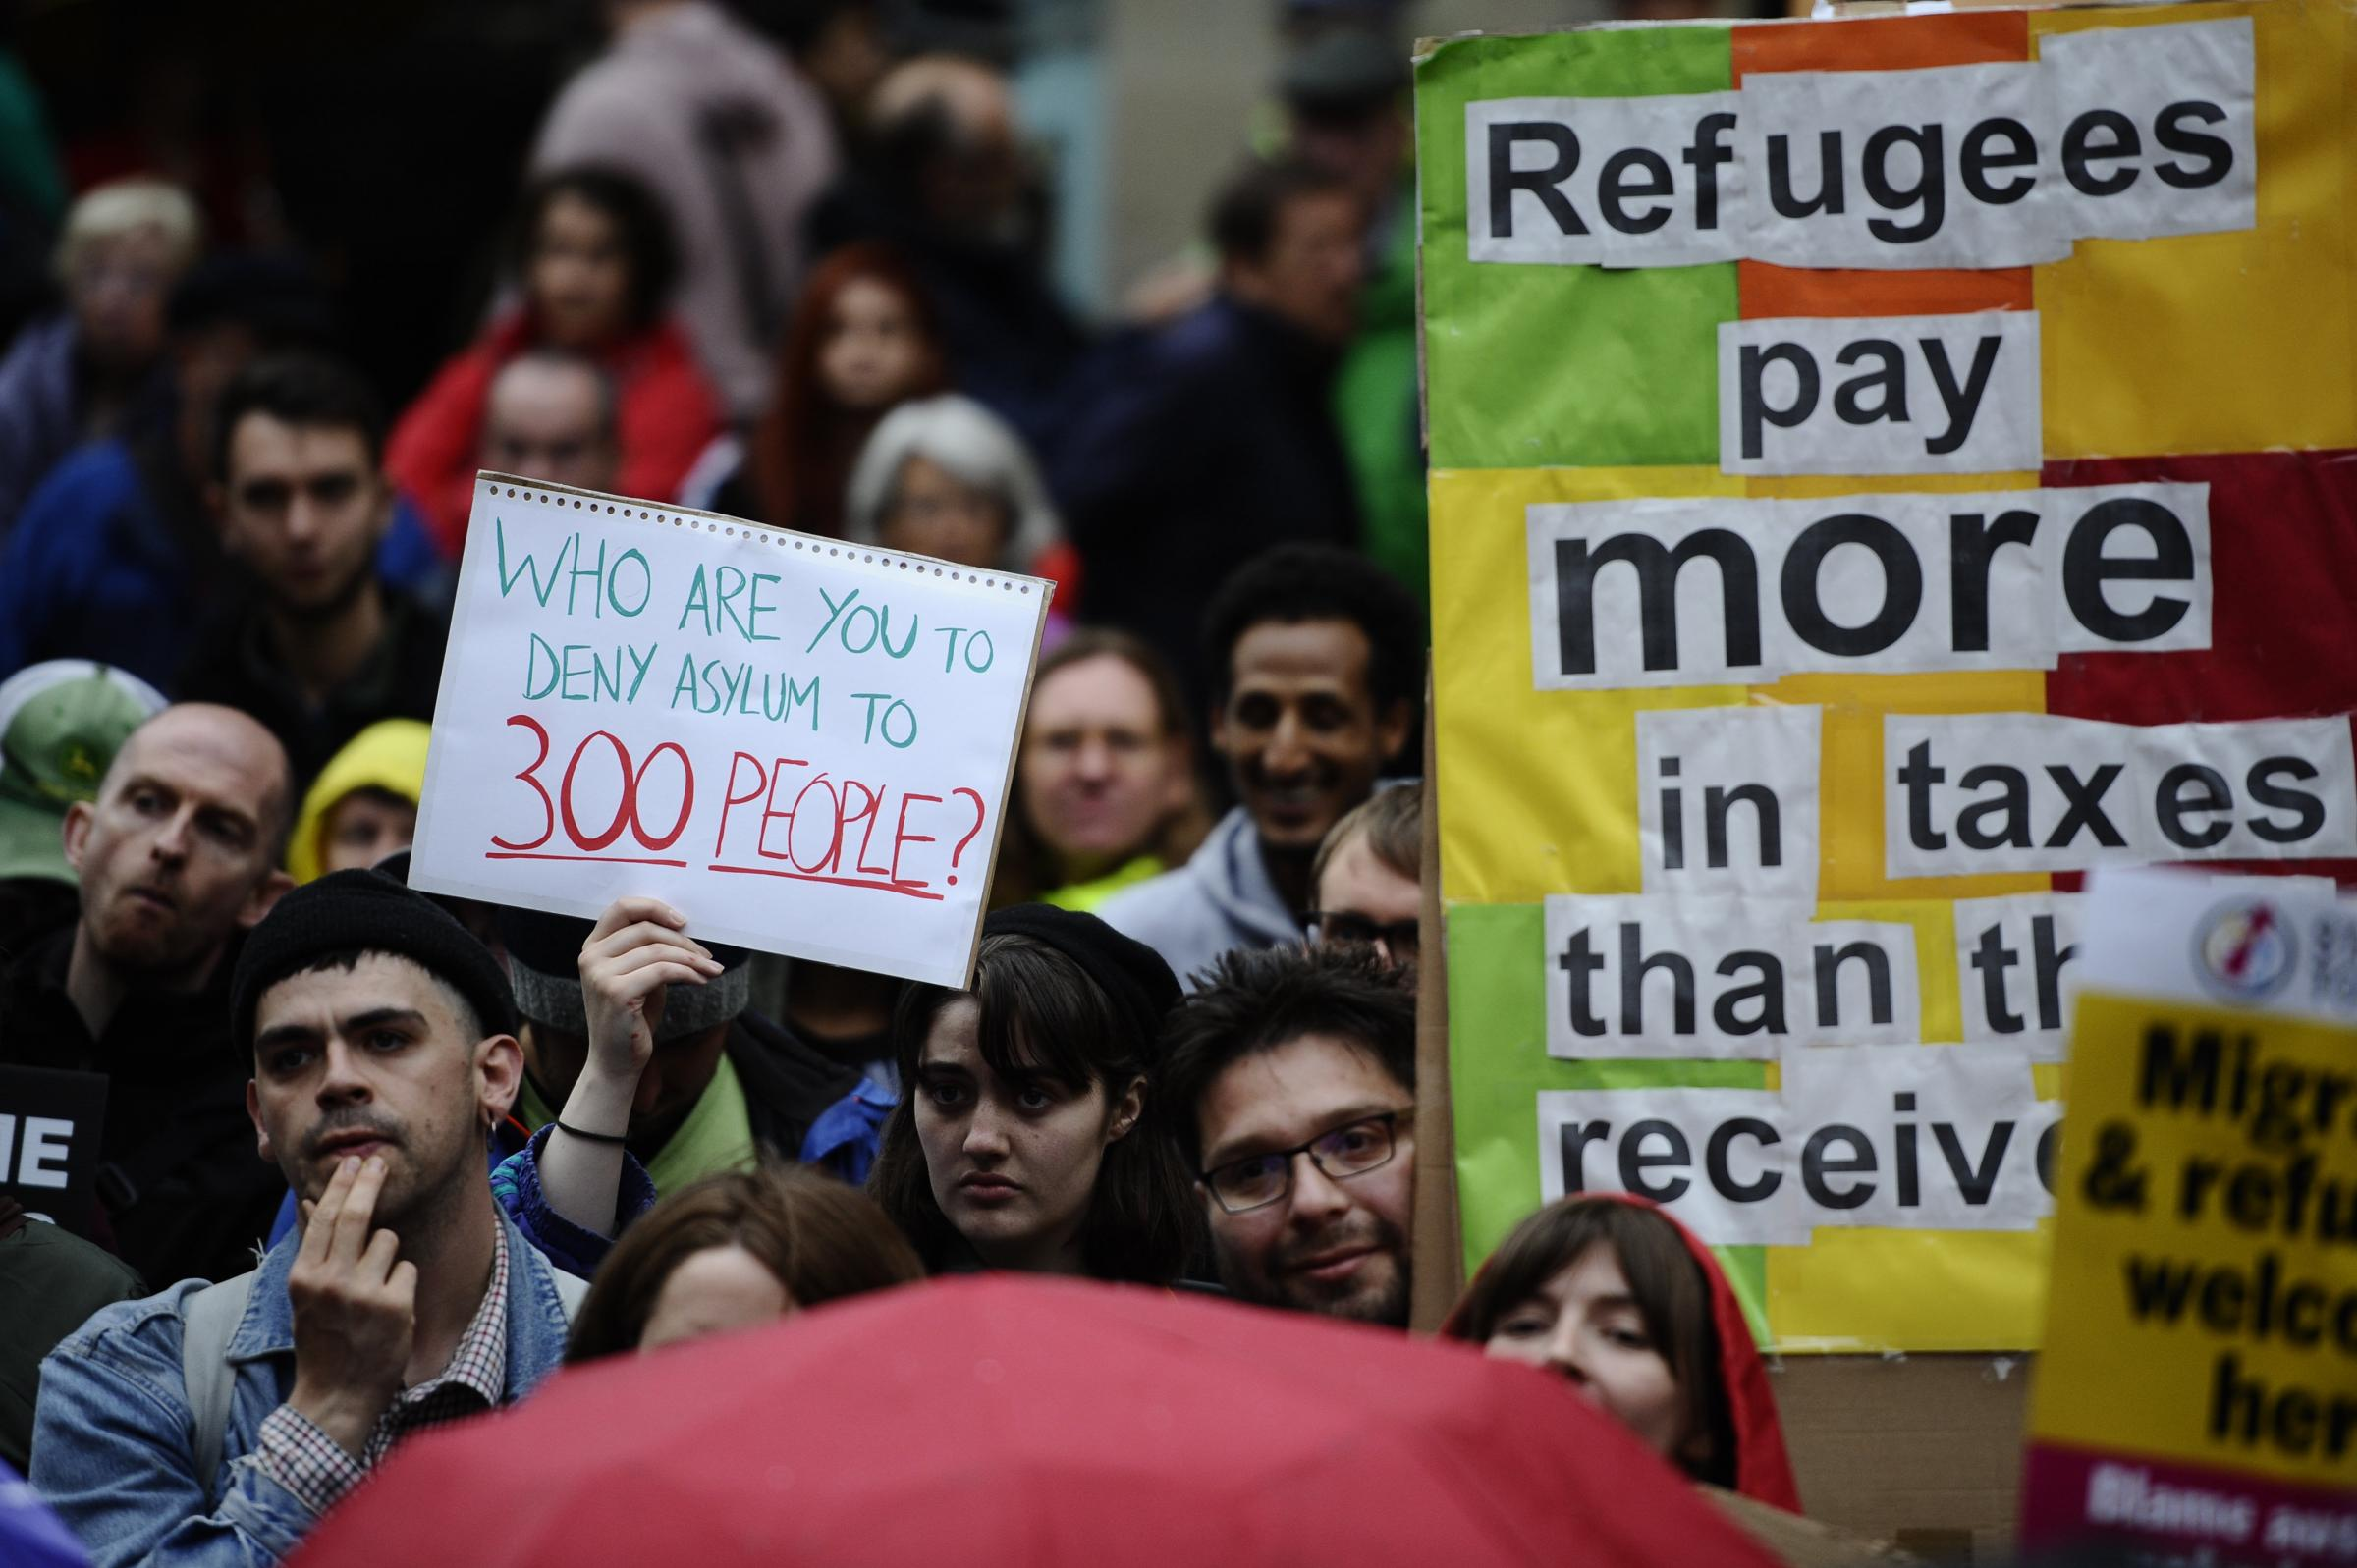 Protesters demonstrate in Glasgow City Centre against the decision by Serco to evict hundreds of asylum seekers (Jamie Simpson/Herald & Times)